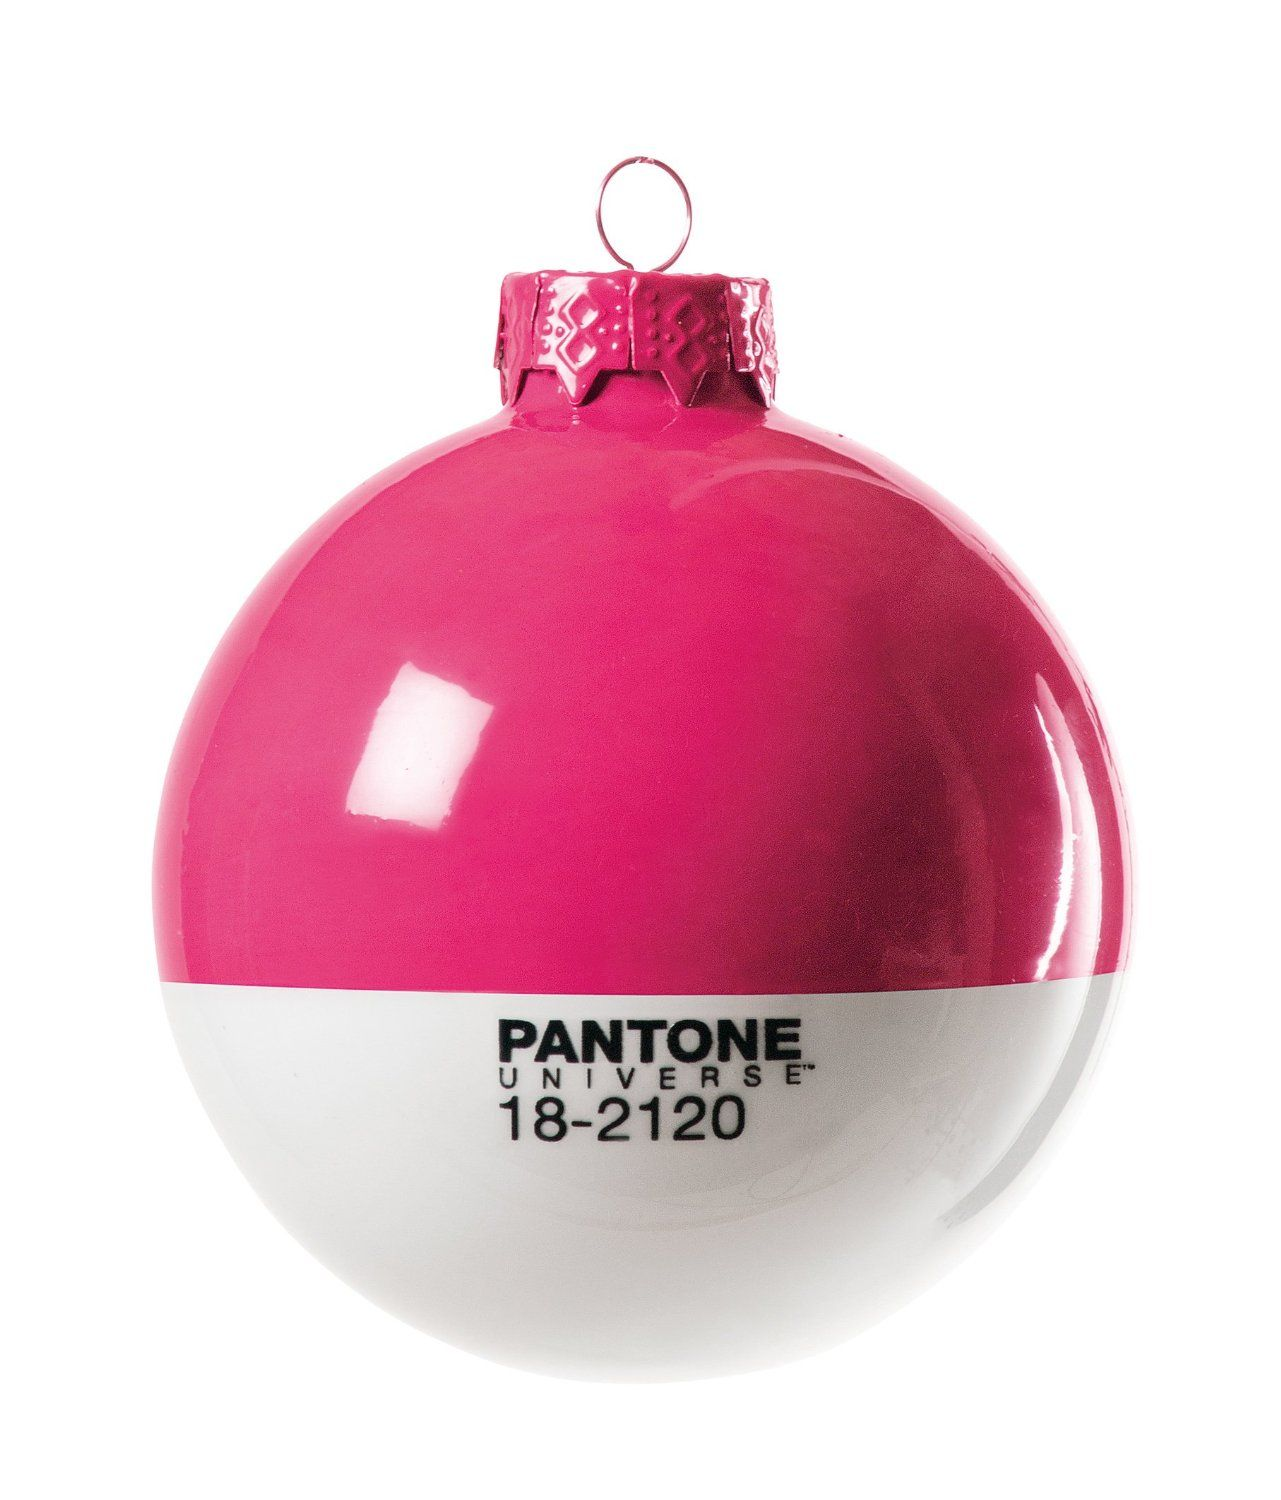 Pantone Christmas Ornaments Pantone Christmas Ornament 18 2120 Honeysuckl Christmas Ball